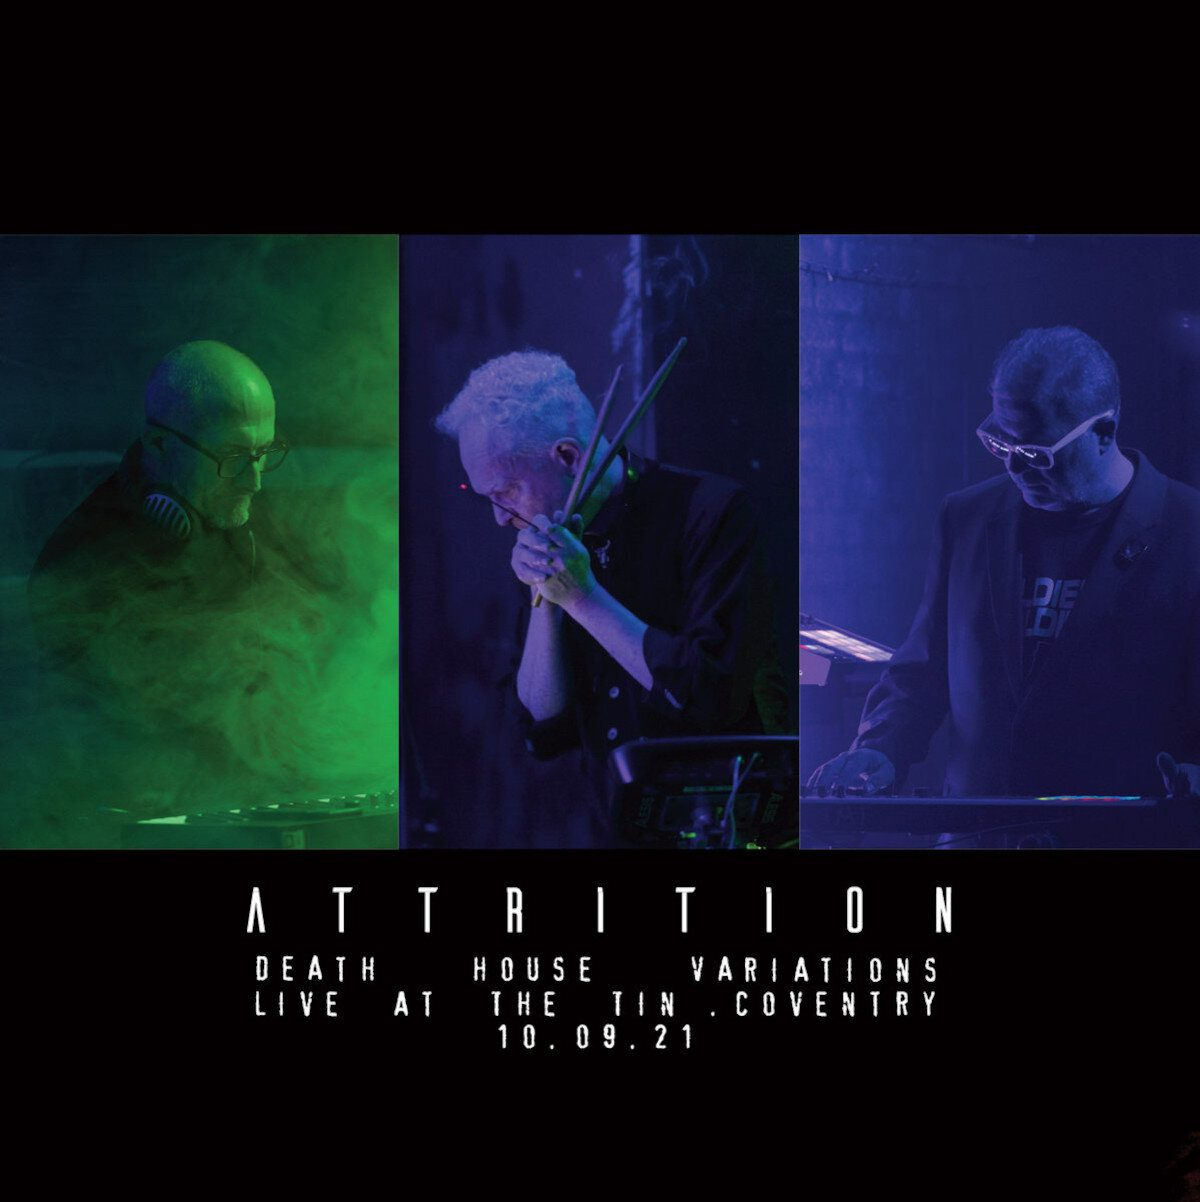 Attrition releases live album 'Death House Variations' recorded live at The Tin in Coventry on September 10